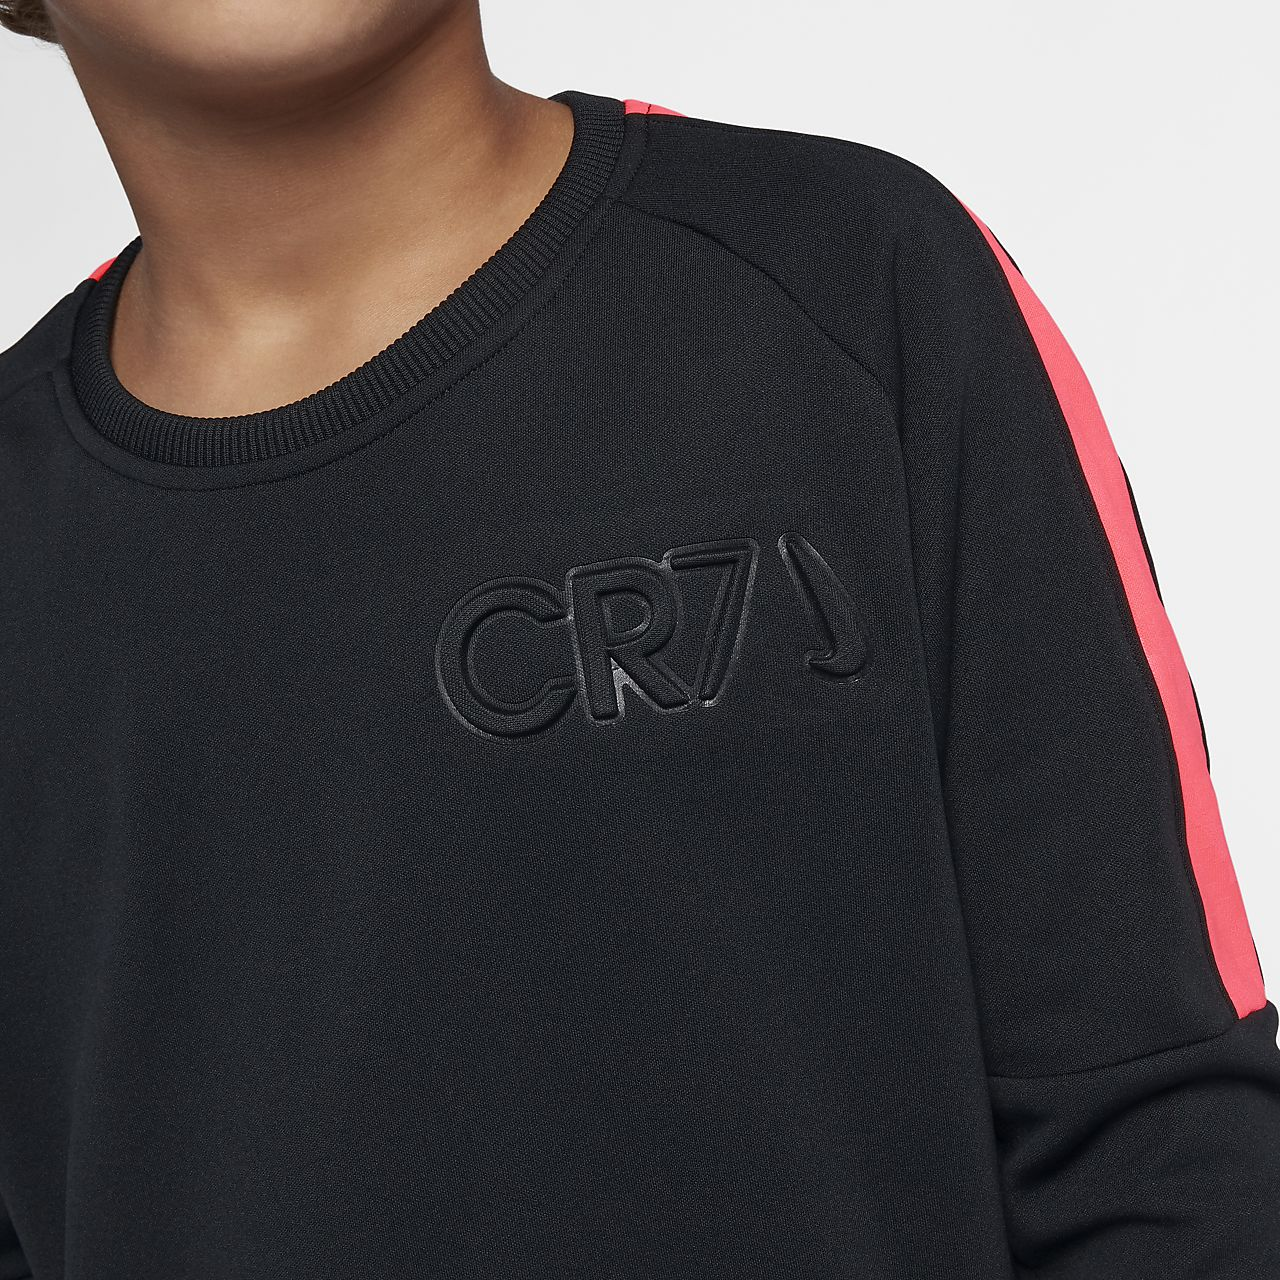 afcc7688f2a Nike Dri-FIT CR7 Older Kids  (Boys ) Long-Sleeve Football Top. Nike ...